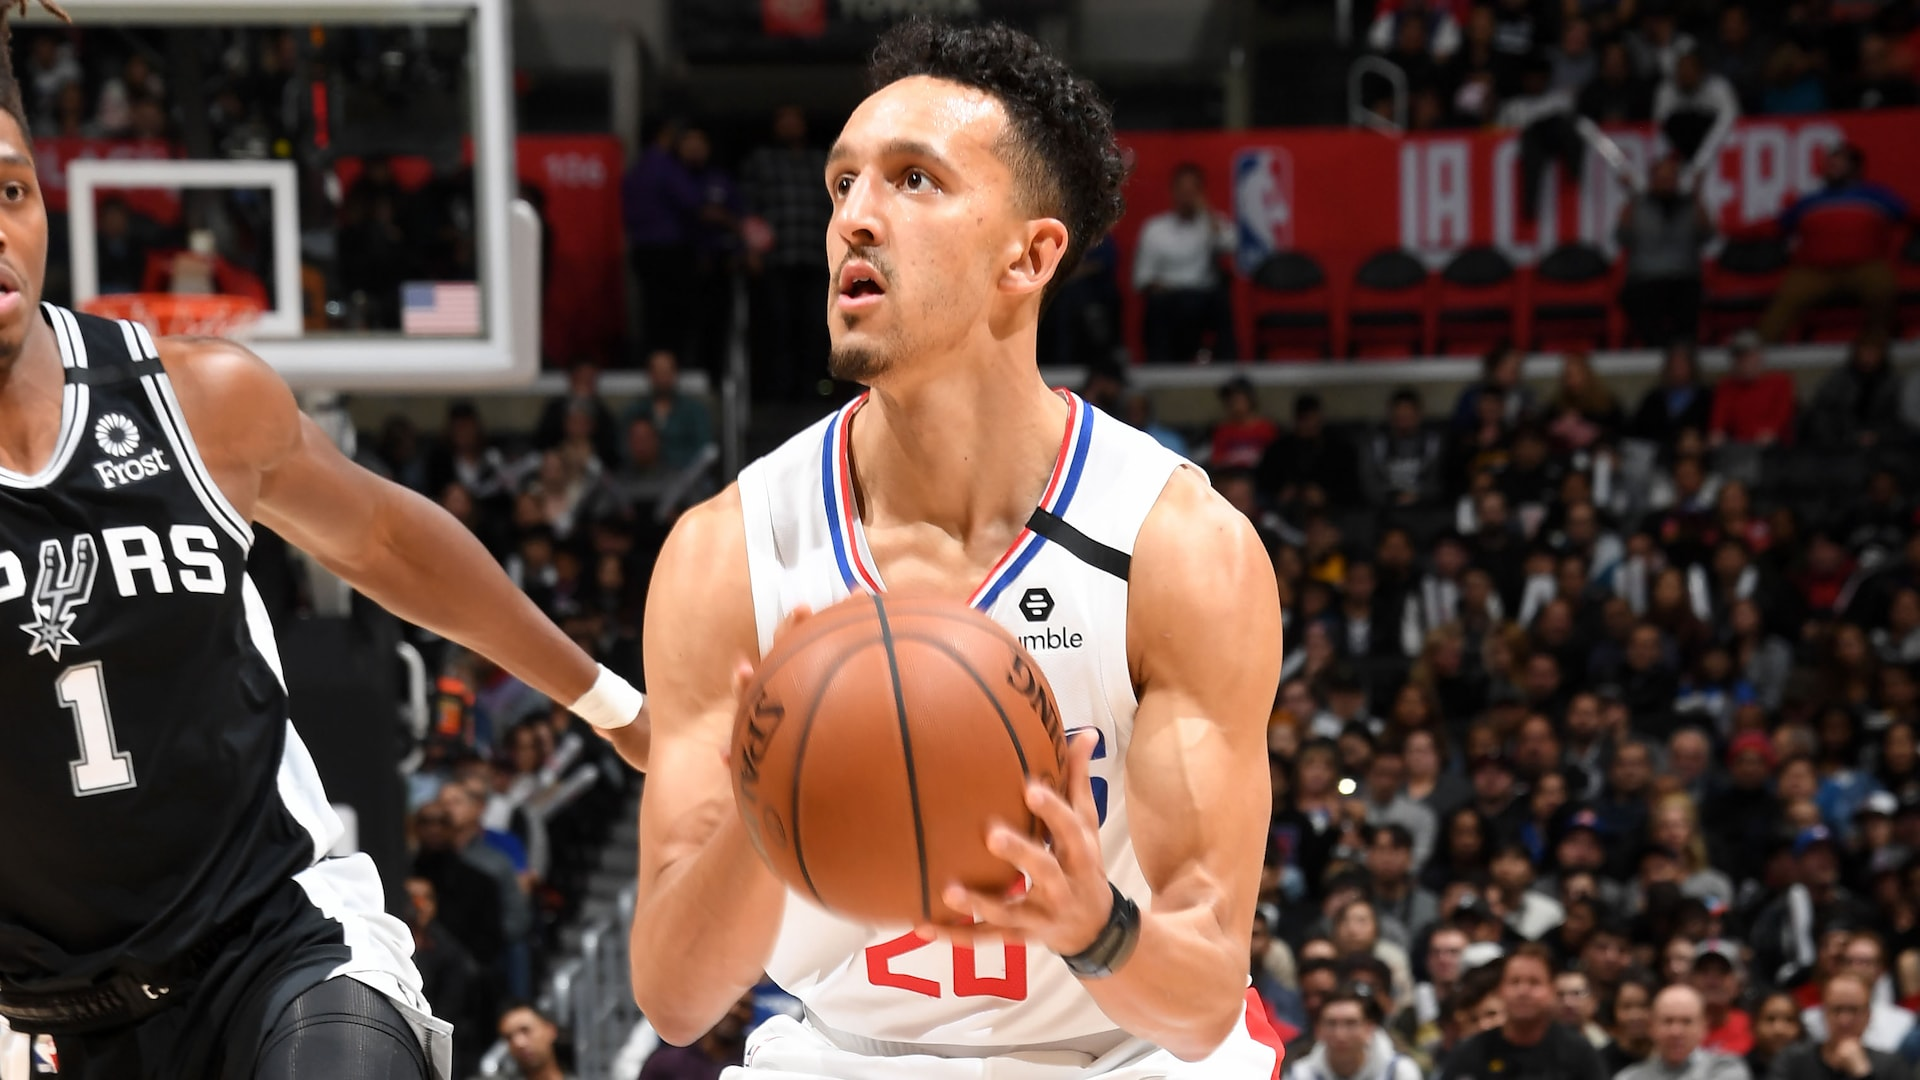 Report: Landry Shamet tests positive for coronavirus